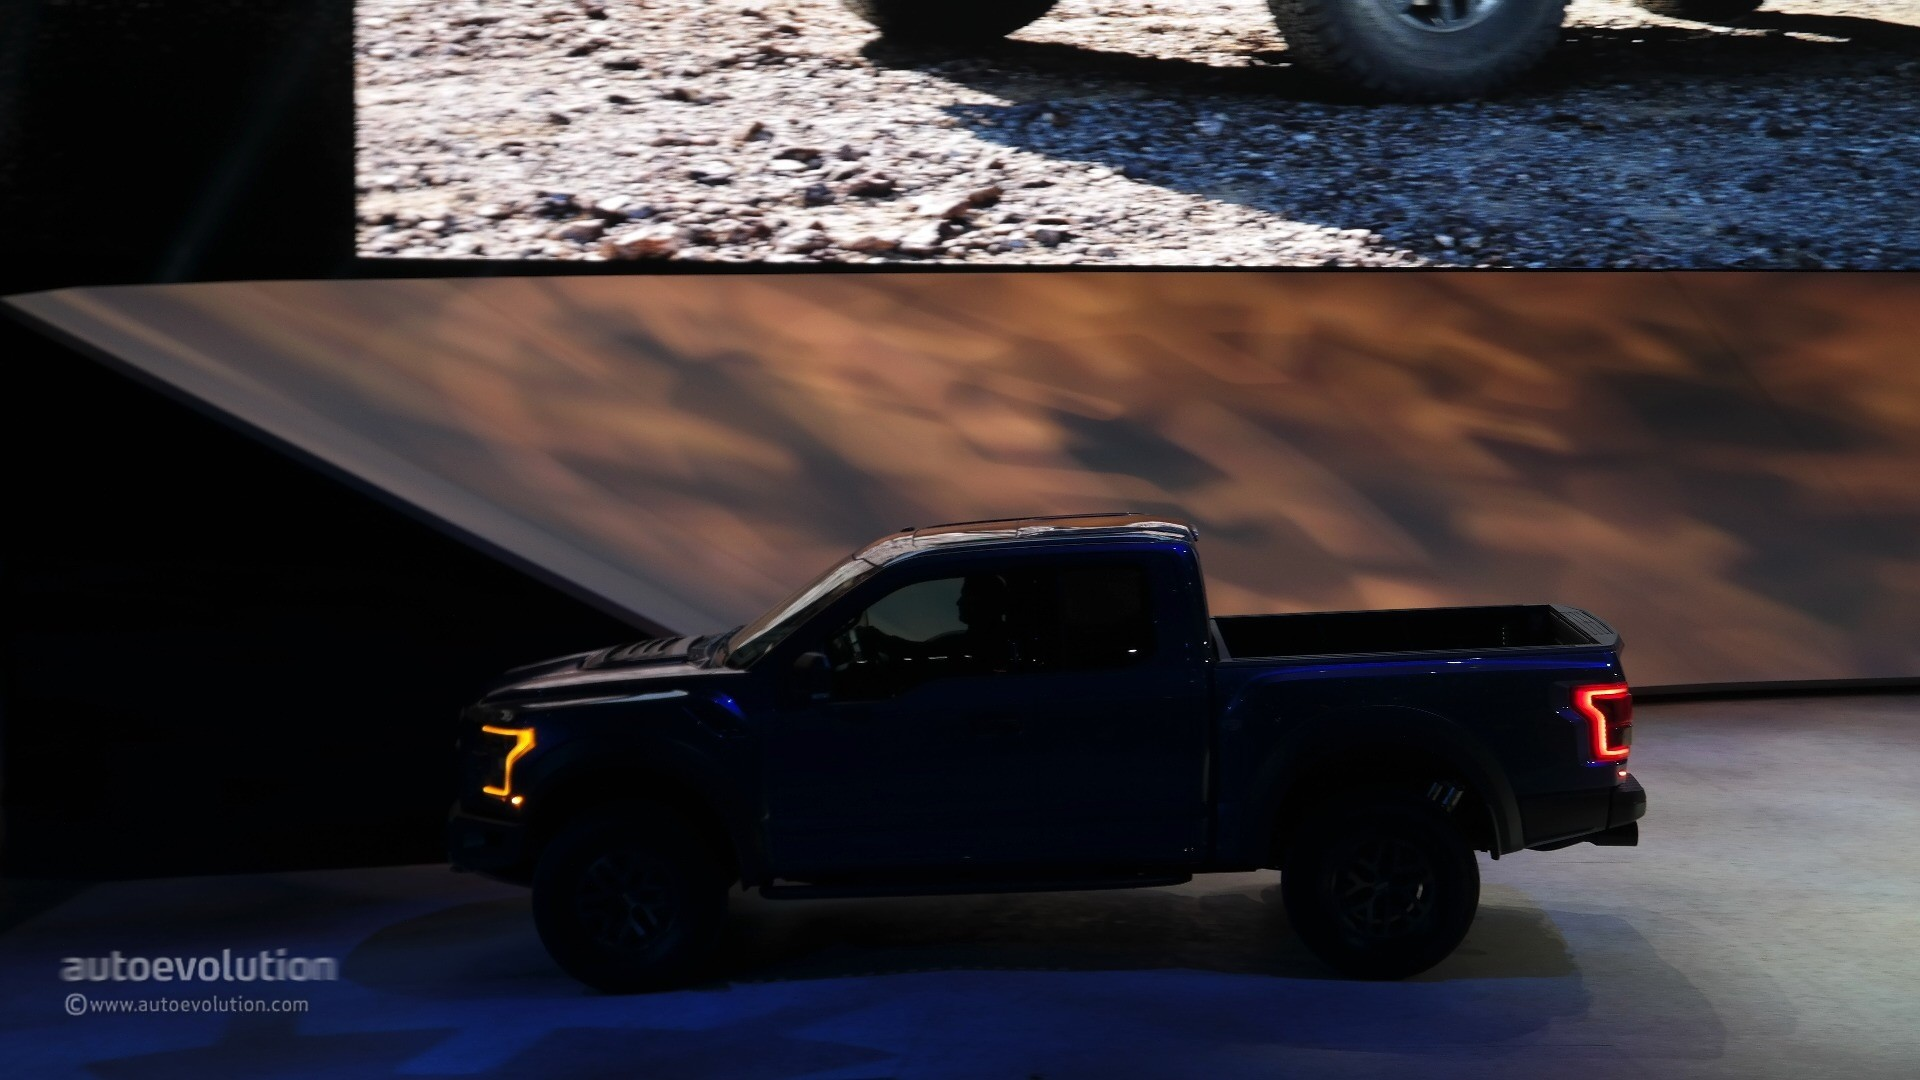 Report: 2018 Ford F-150 Raptor Getting New Rear Suspension and Tailgate - autoevolution